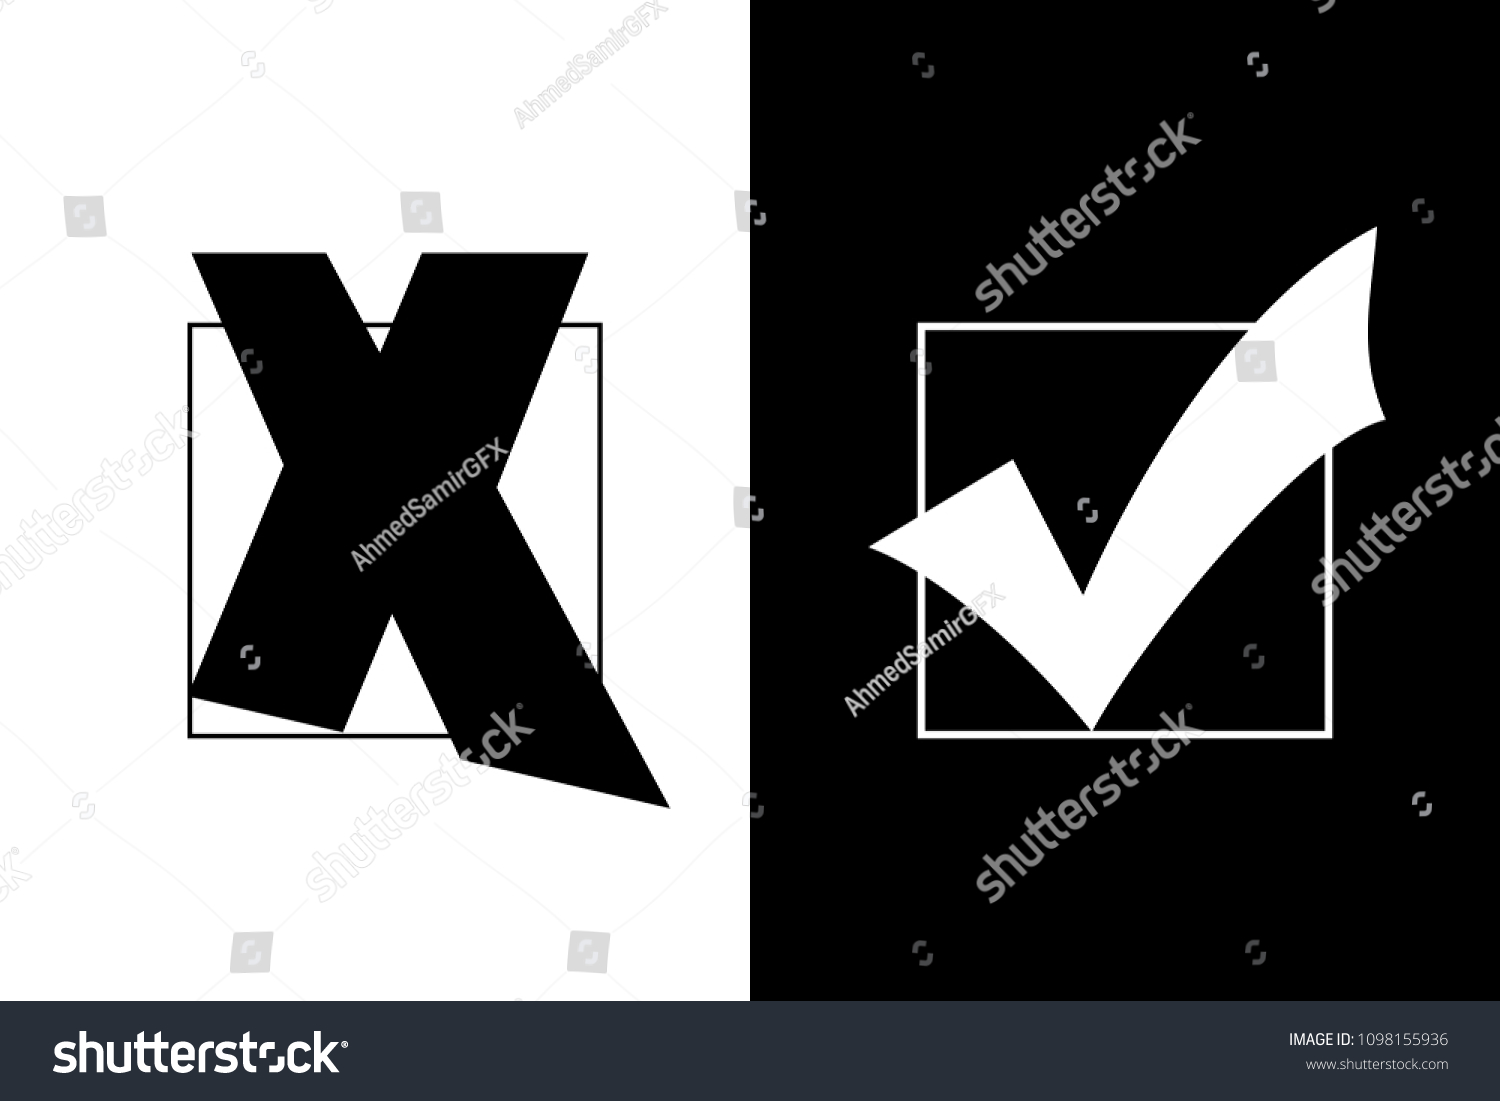 Check Mark Cross Mark Symbols Black Stock Illustration 1098155936